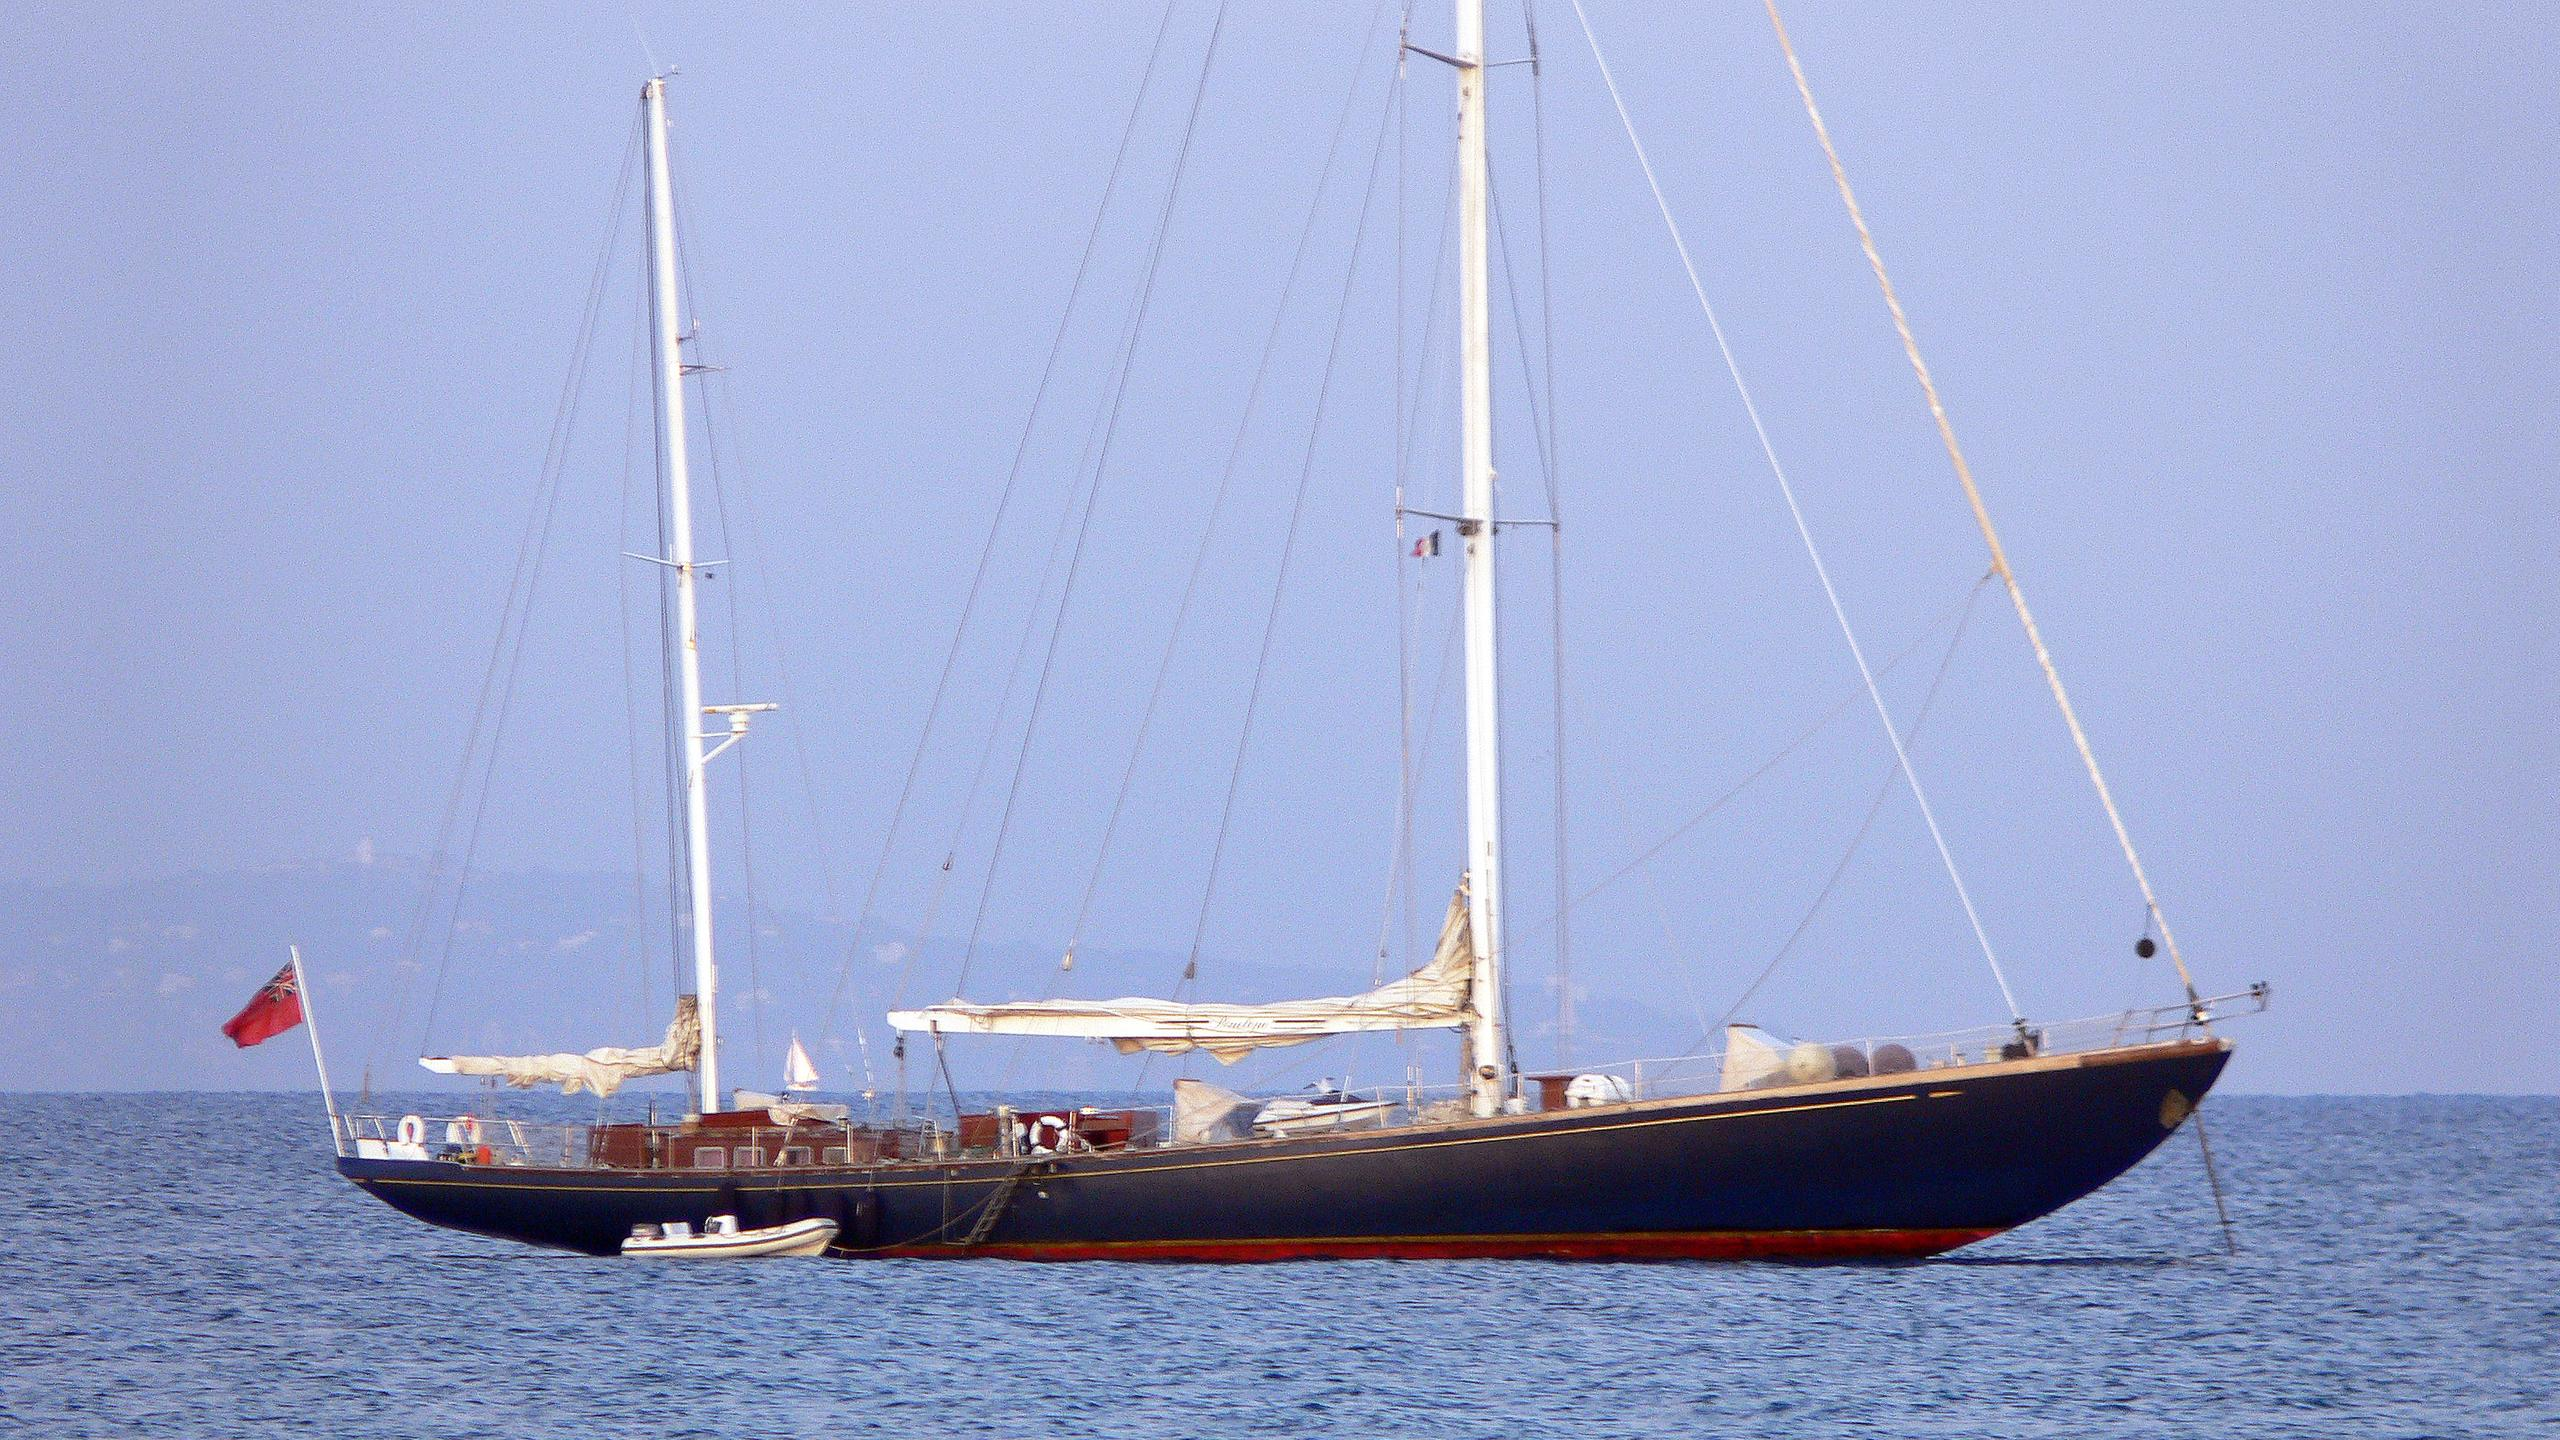 penelope-sailing-yacht-perriere-1968-39m-profile-at-sea